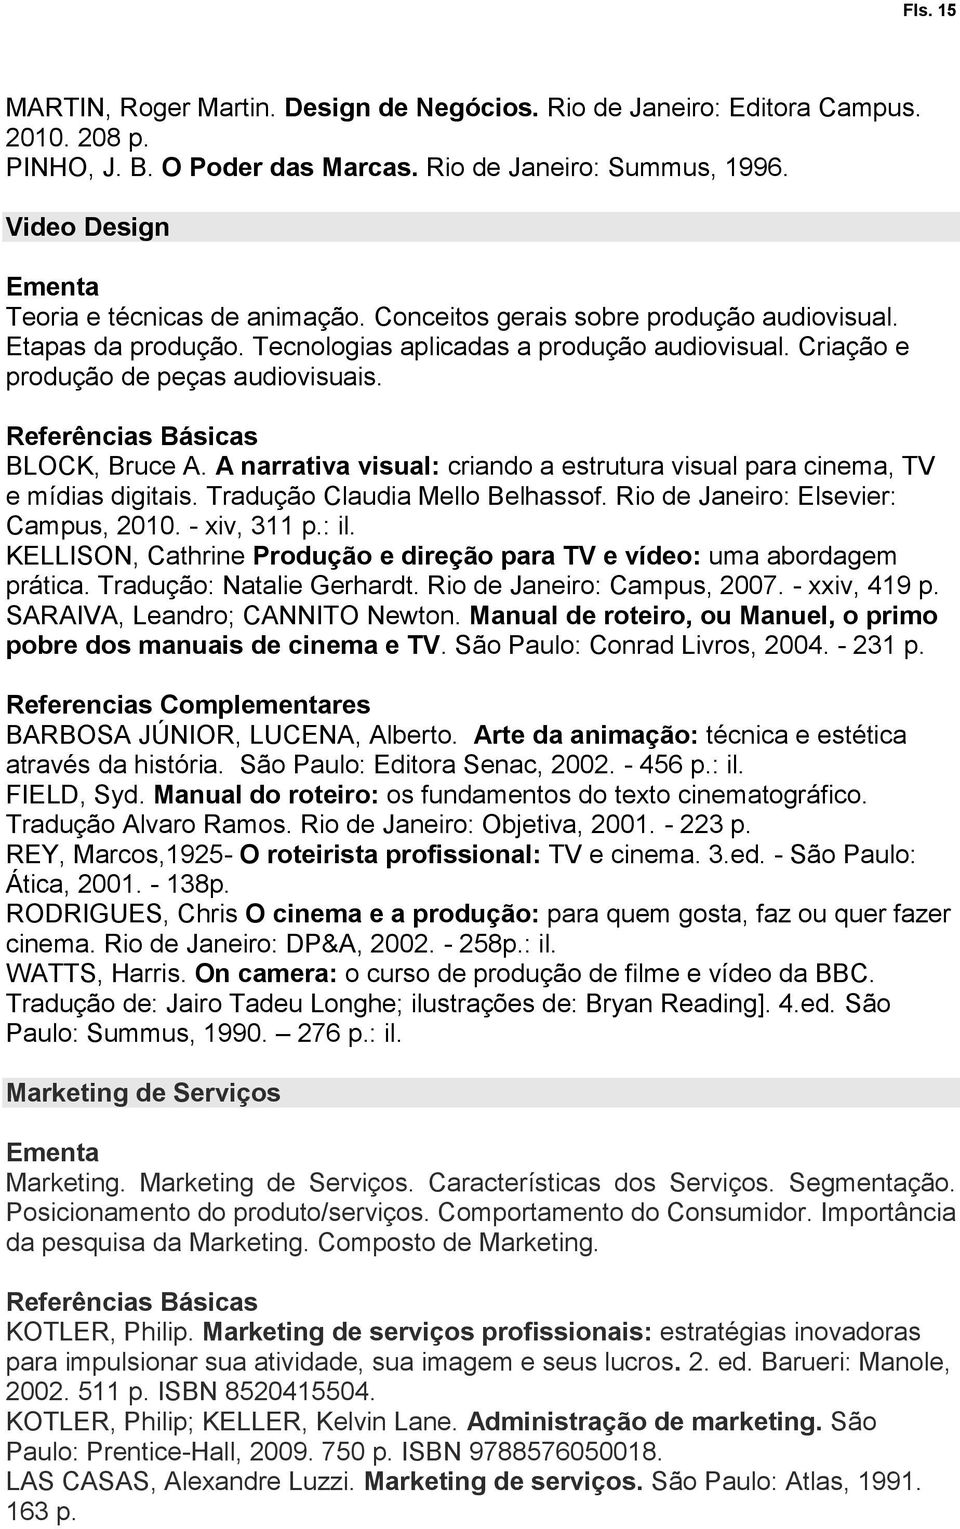 BLOCK, Bruce A. A narrativa visual: criando a estrutura visual para cinema, TV e mídias digitais. Tradução Claudia Mello Belhassof. Rio de Janeiro: Elsevier: Campus, 2010. - xiv, 311 p.: il.